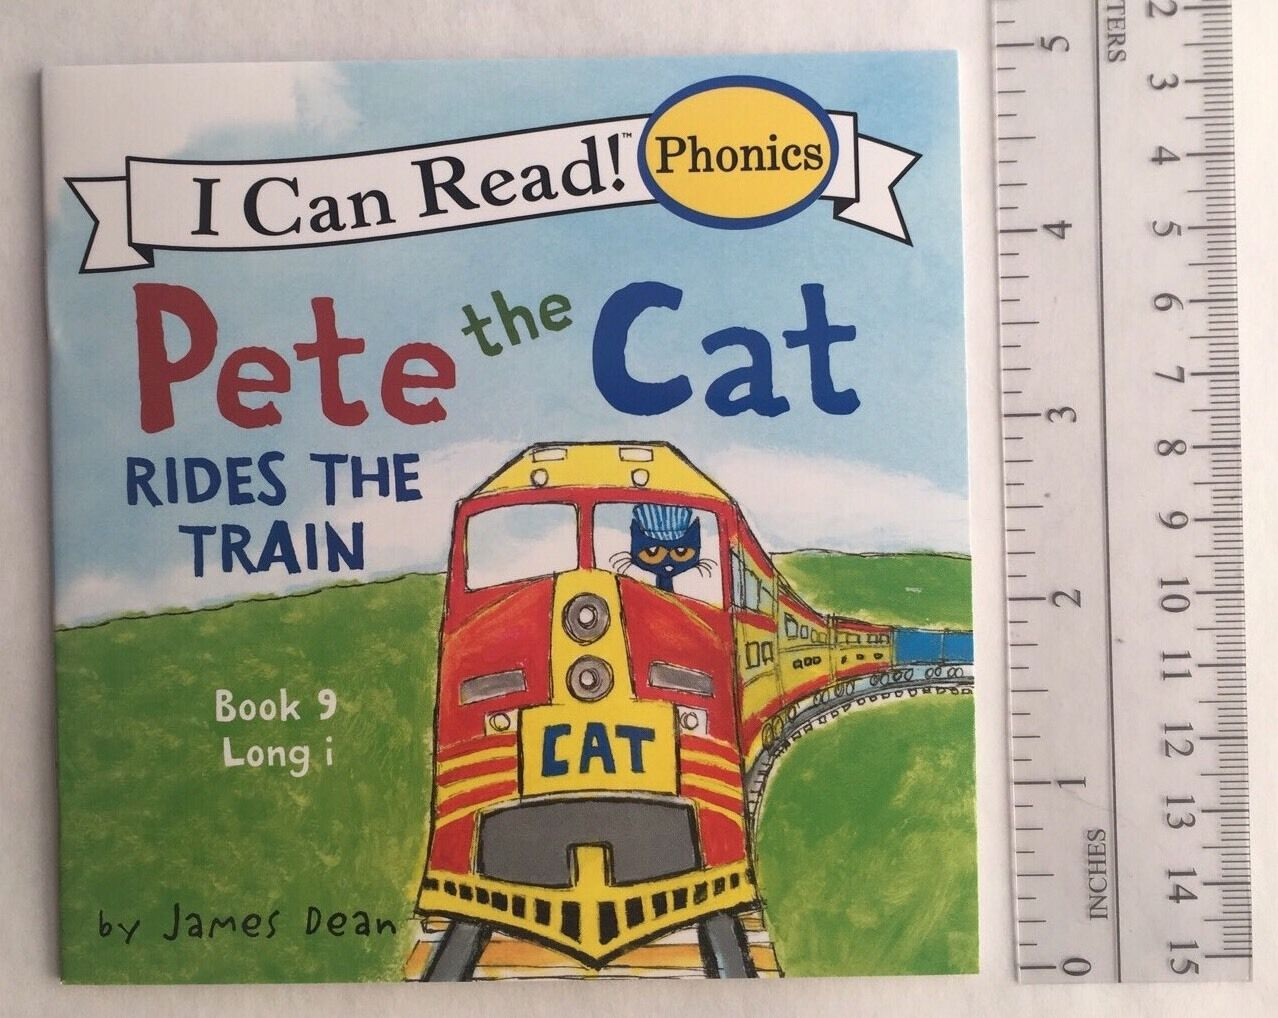 Pete the Cat Childrens Books Phonics I Can Read Box Gift Set Lot 12